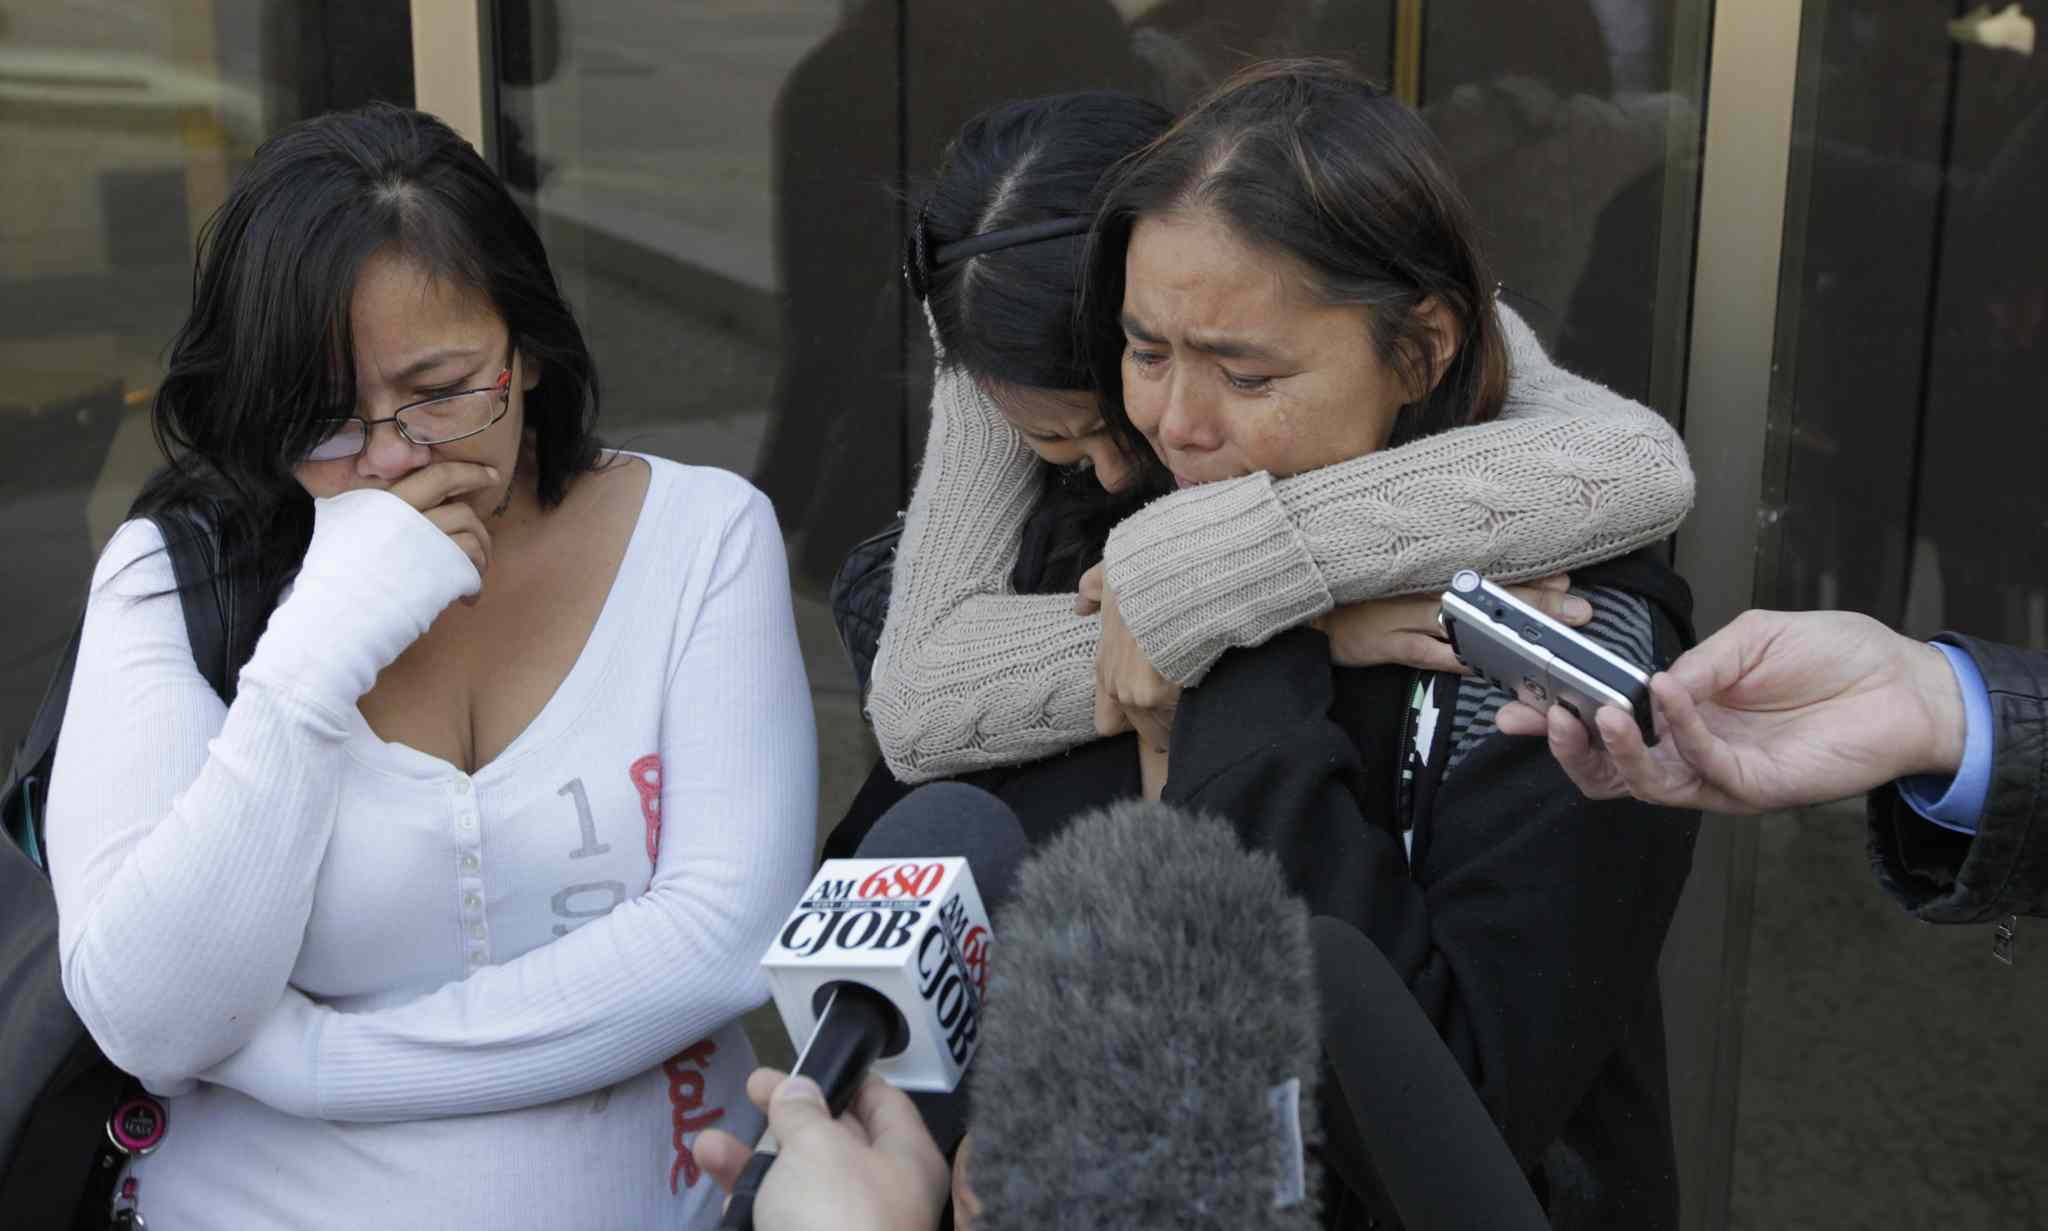 Members of Tina Fontaine's family speak to reporters following the sentencing hearing for the men who pleaded guilty to killing Tina's father, Eugene Fontaine, in 2011. At right, Eugene's sister Lana Fontaine is comforted by relatives outside court. The judge reserved sentencing Wednesday.